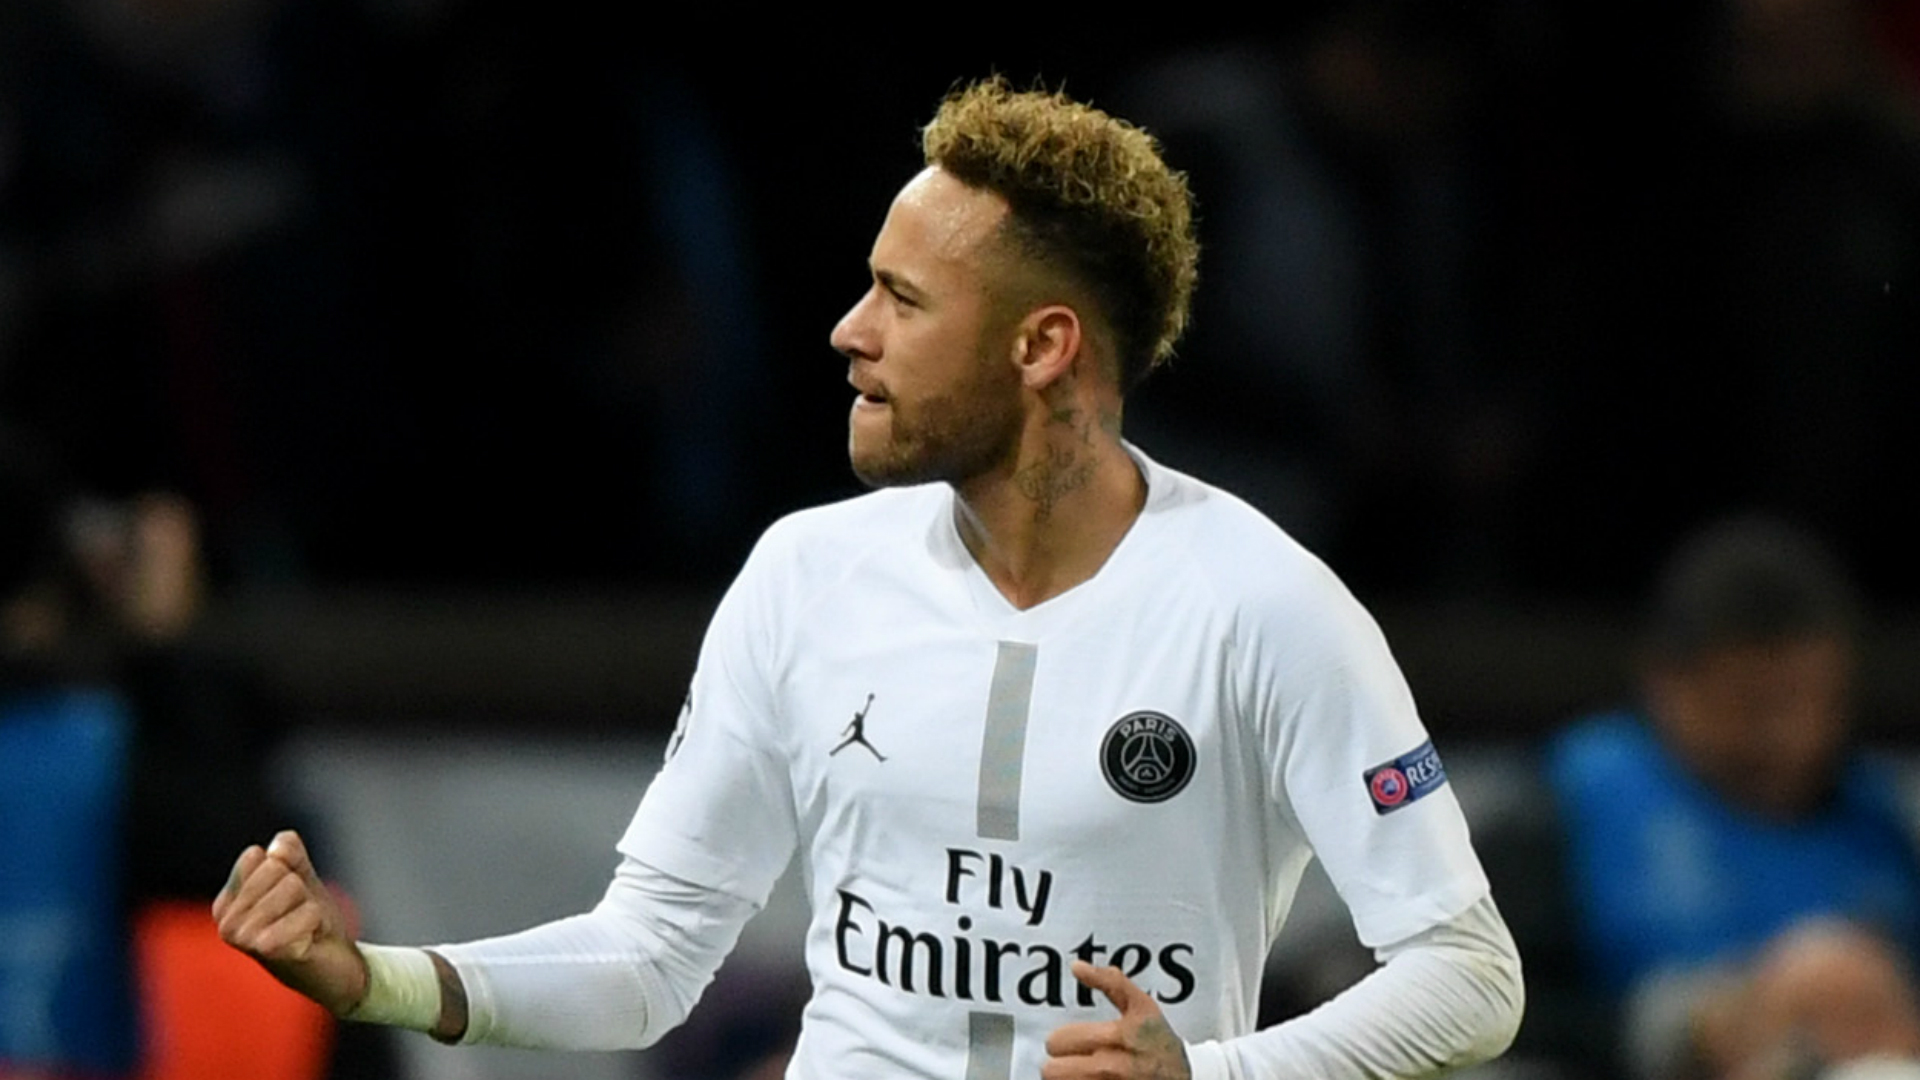 Neymar will answer his critics on the pitch - Alves leaps to defence of under-fire PSG star